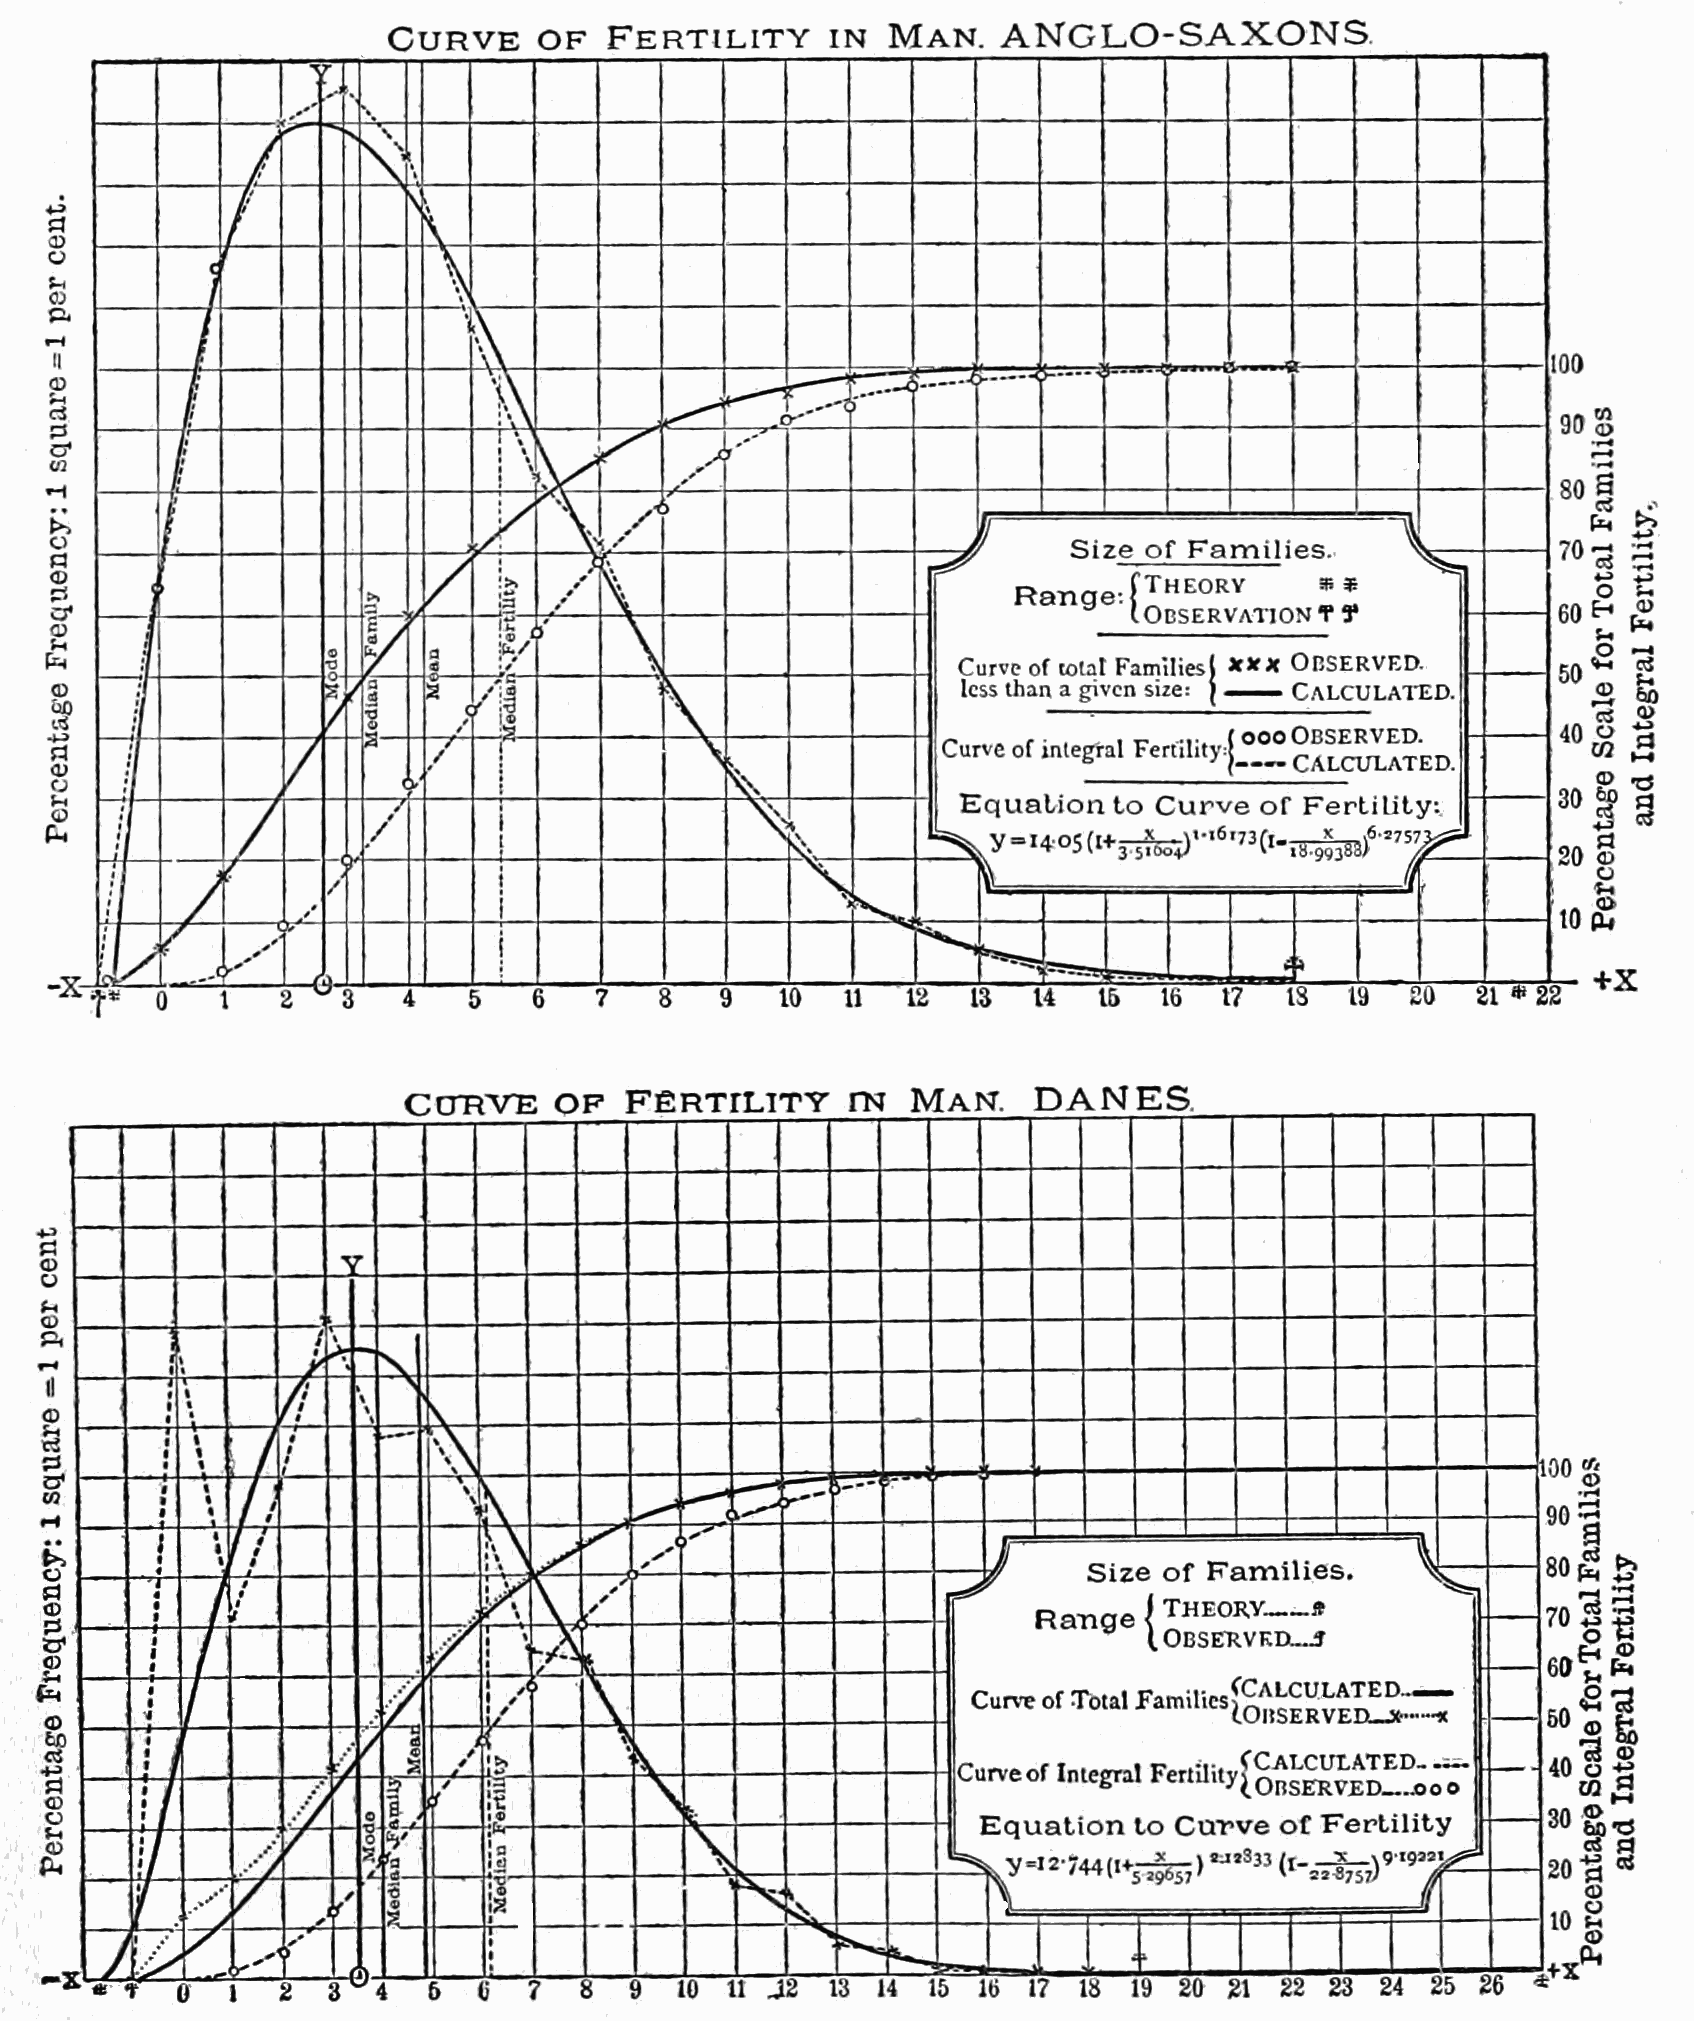 PSM V62 D574 Statistical curves charting the fertility rate of anglo saxons and danes.png